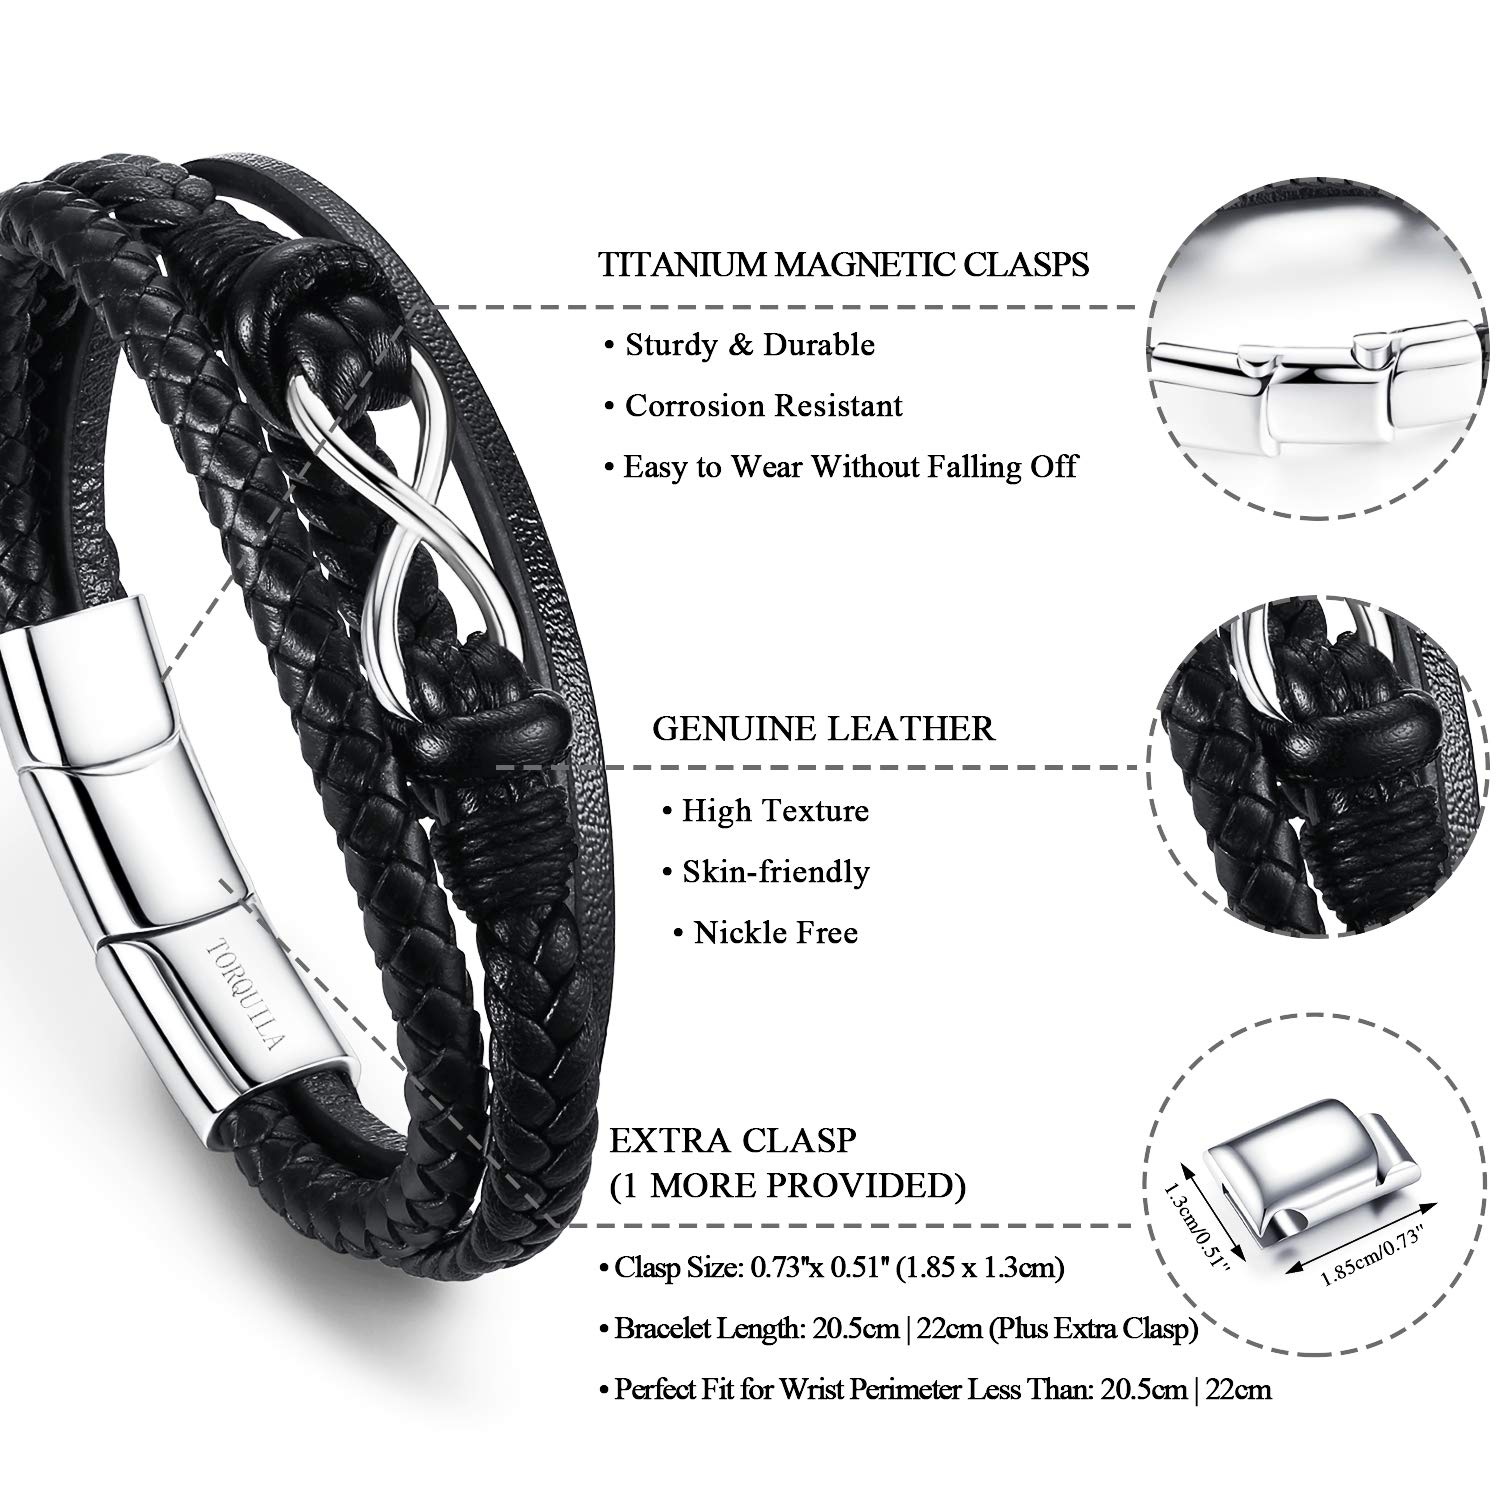 1 More Clasp Included Length 8.66 TORQUILA Mens Bracelets Braided Rope Genuine Leather Bracelet for Men 22cm # Infinity Handmade Adjustable Mens Bracelet with Silver Titanium Magnetic Clasp